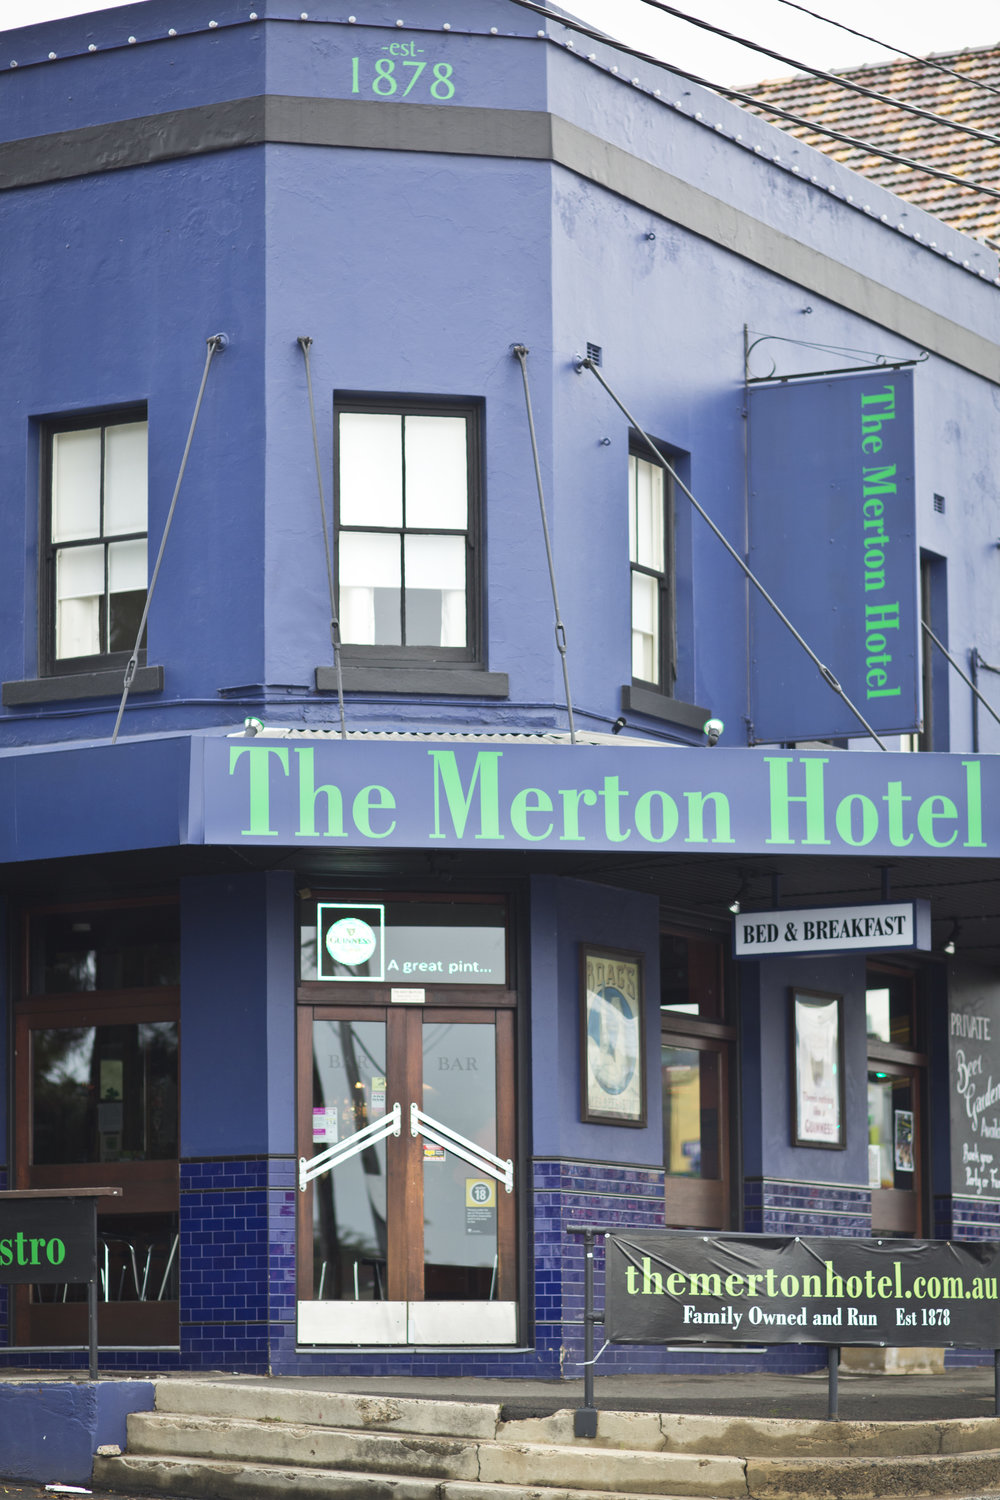 MERTON HOTEL - The Merton Hotel is a locally Irish owned and run pub just 3km from Sydney city in the Balmain Rozelle area.Enjoy views of the harbour bridge and city skyline from the bar or spend a sunny afternoon relaxing in the beer garden with a glass of wine and delicious food from the bistro.The Merton Hotel offers quality bed and breakfast accommodation just minutes from the centre of Sydney and is also a popular venue for functions.Proudly a pokies free zone, the pub offers free live music on weekend evenings where you will see some of Sydney's best musicians.